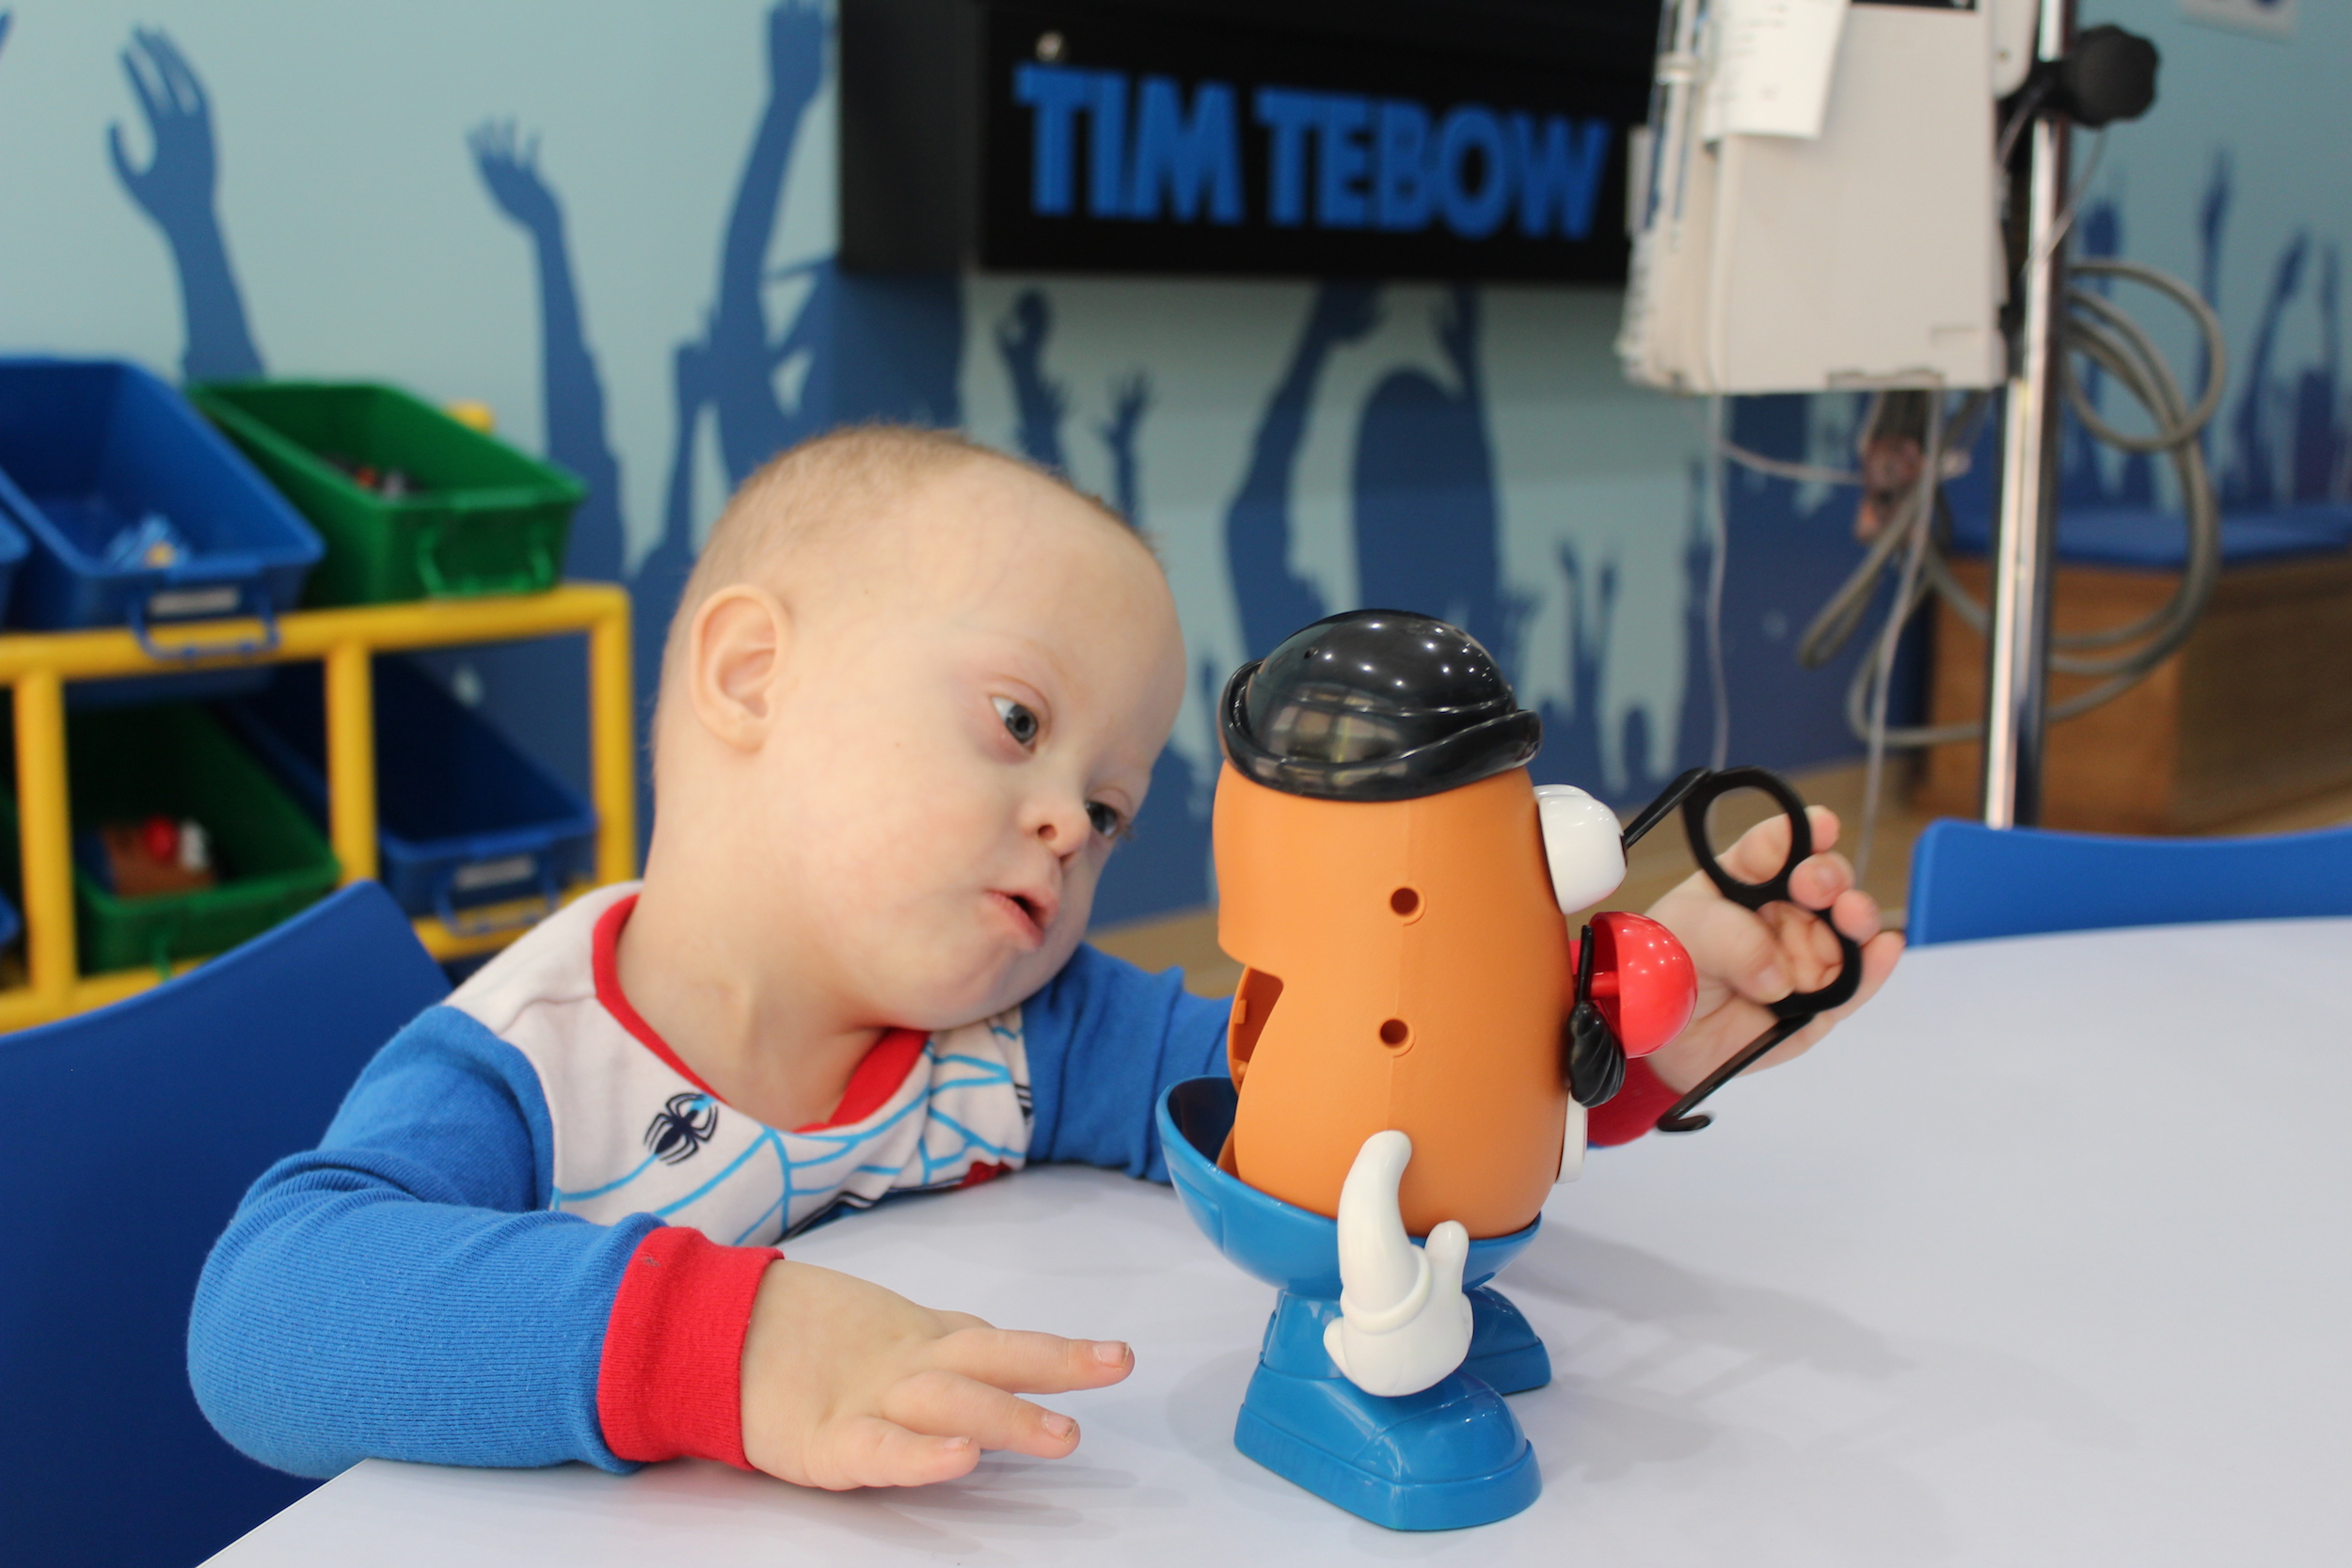 Wyatt_playing_in_the_Covenant_Childrens_Hospital_Timmys_Playroom.JPG